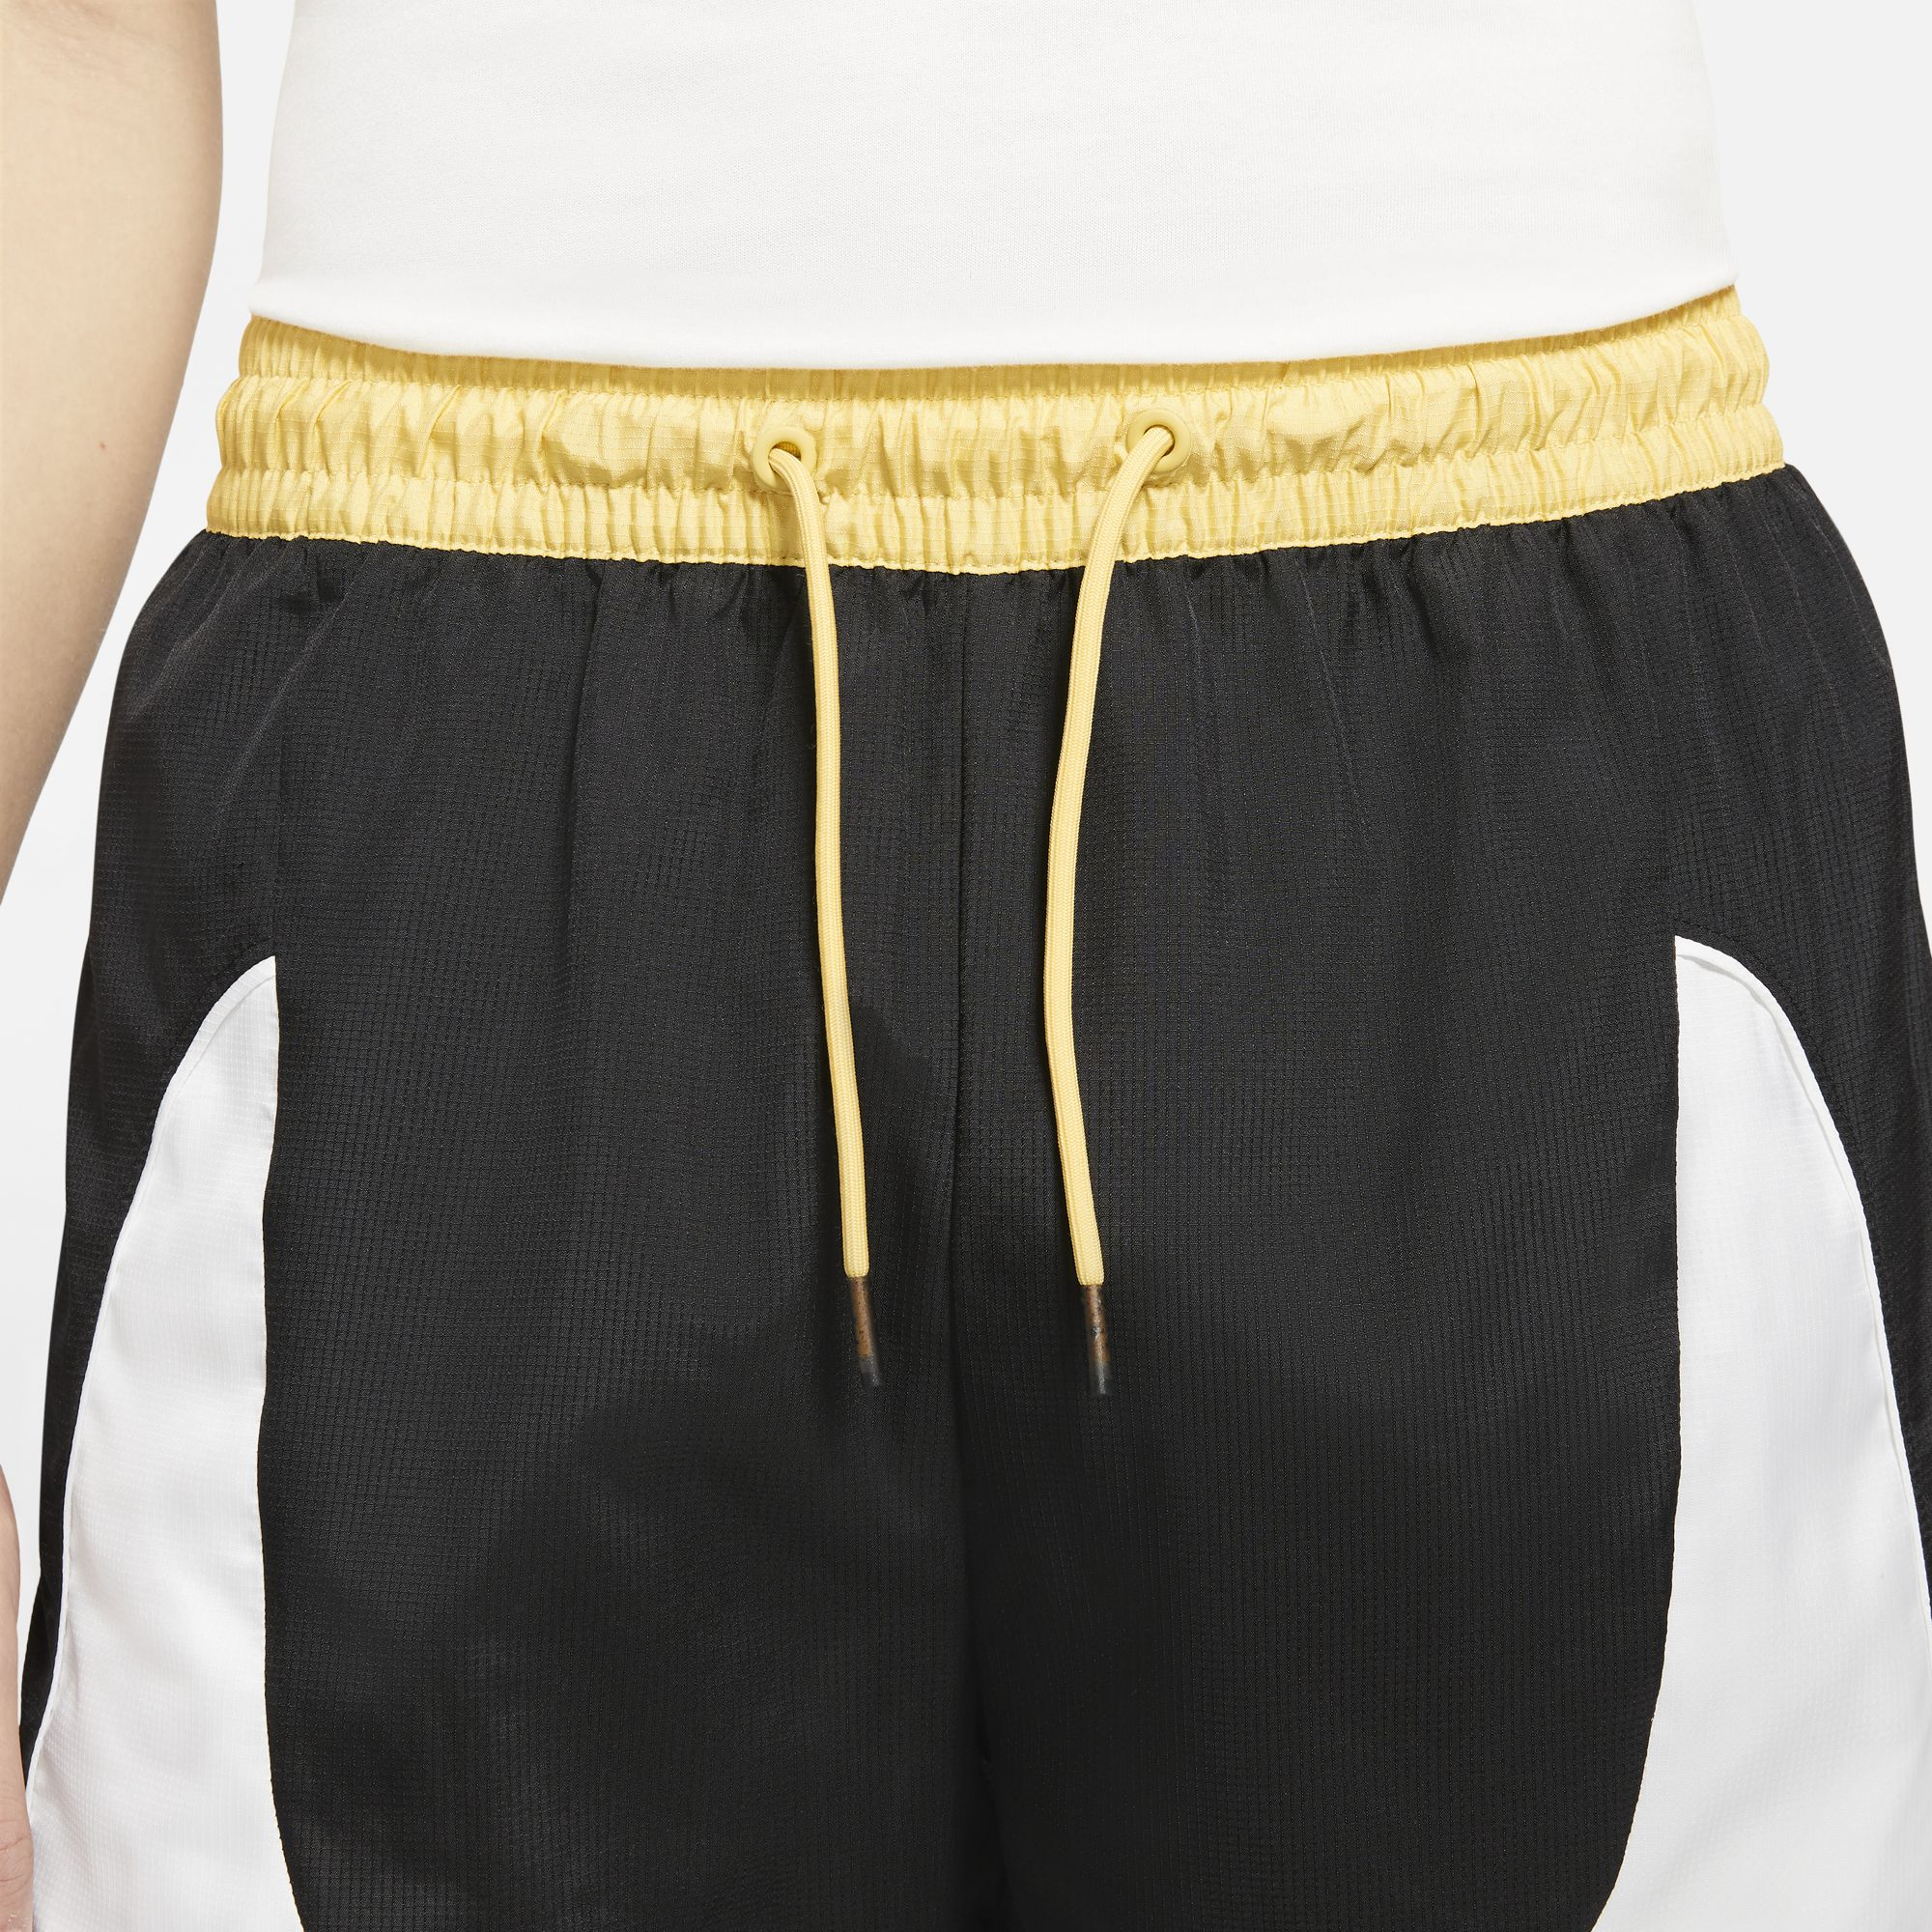 Nike Basketball Throwback Shorts - Black/White/Saturn Gold NK-CV1862-010